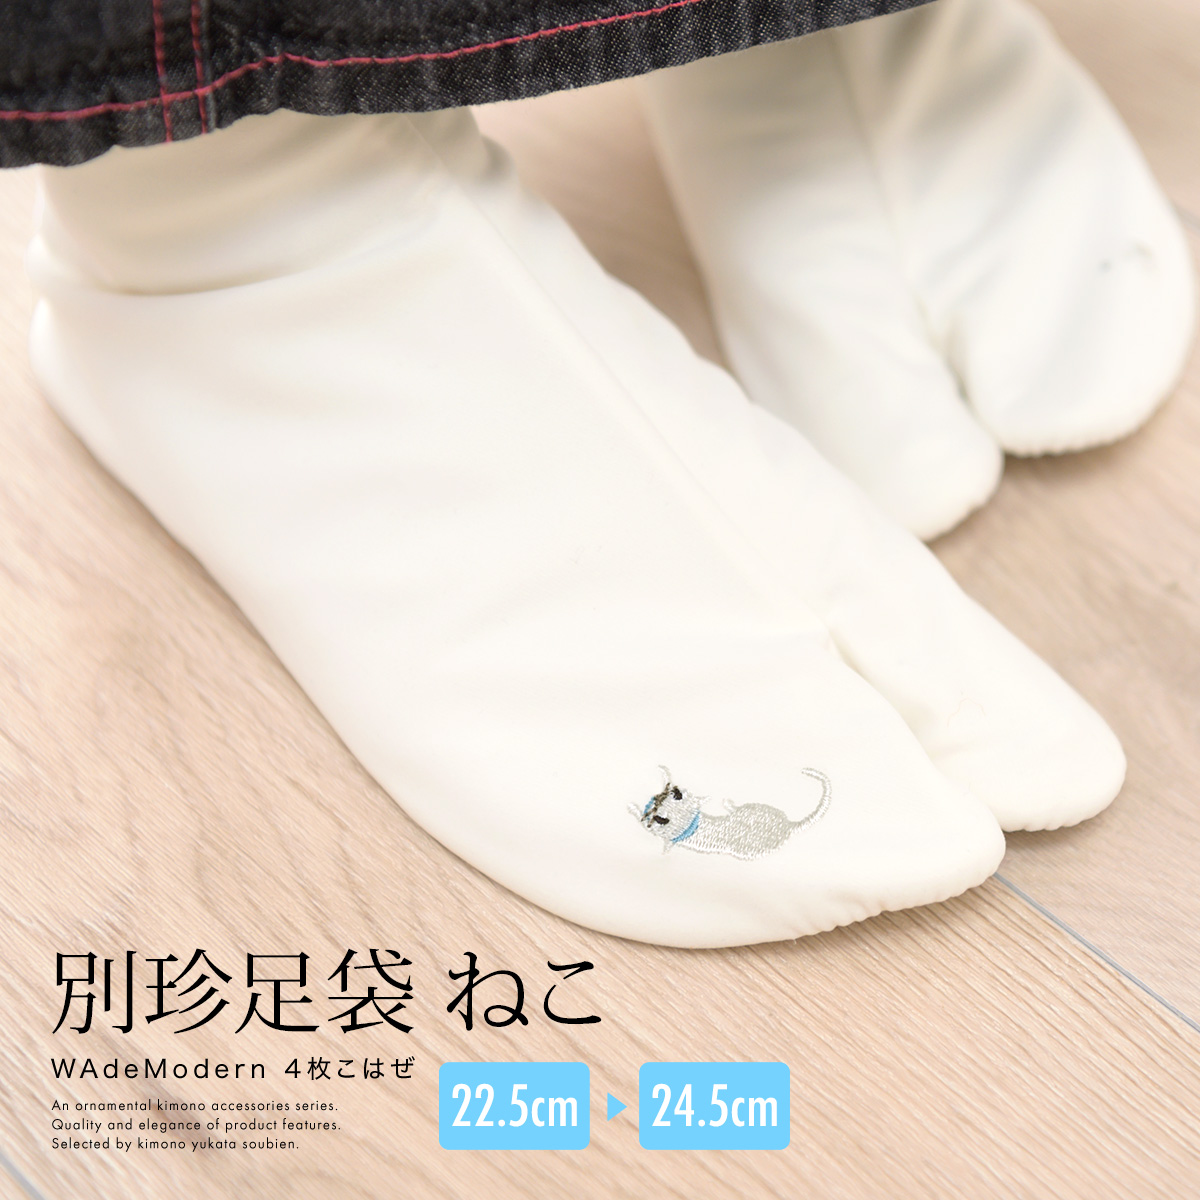 Velveteen embroidery tabi ivory cat cat another unusual WA de Modern SWAROVSKI スワロフスキークリエーション use women's footwear take made in Japan